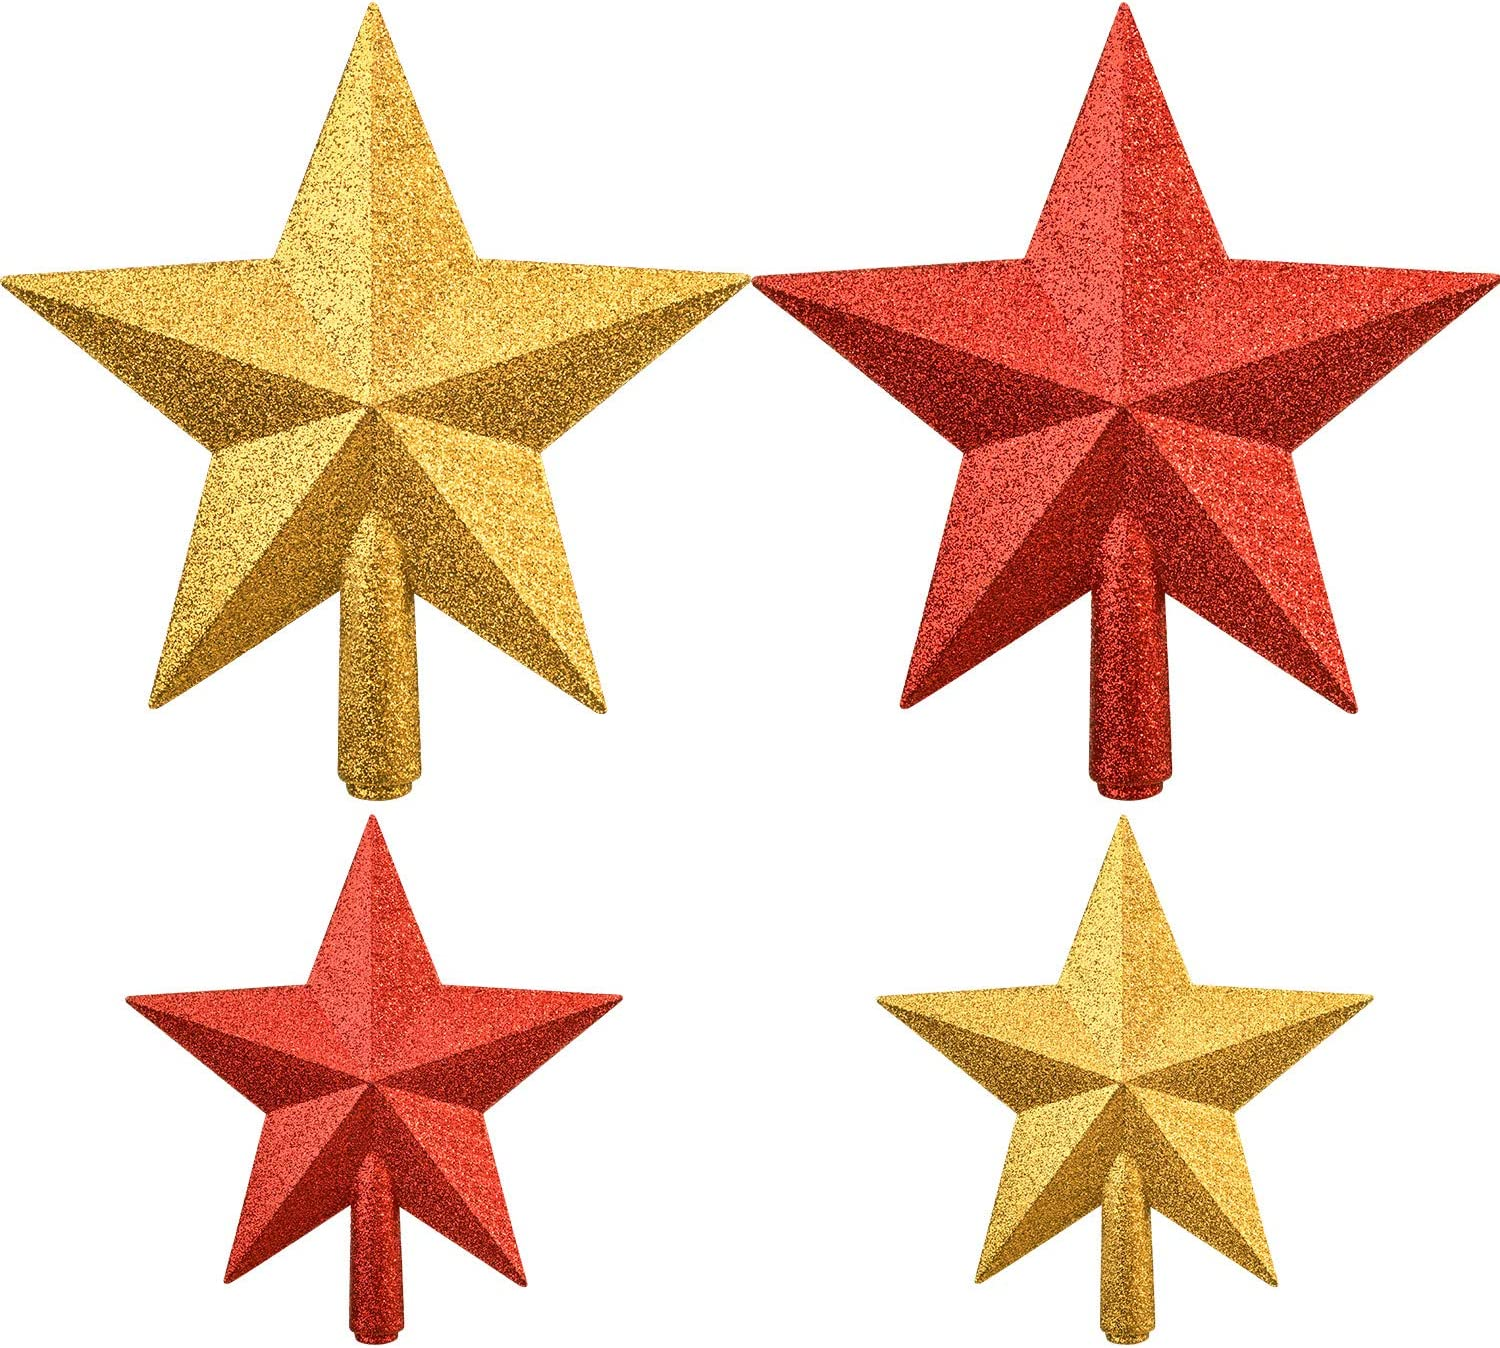 Boao 4 Pieces Glitter Star Tree Topper Christmas Tree Toppers Decorations for Xmas Tree Decoration, 2 Sizes (Gold and Red)